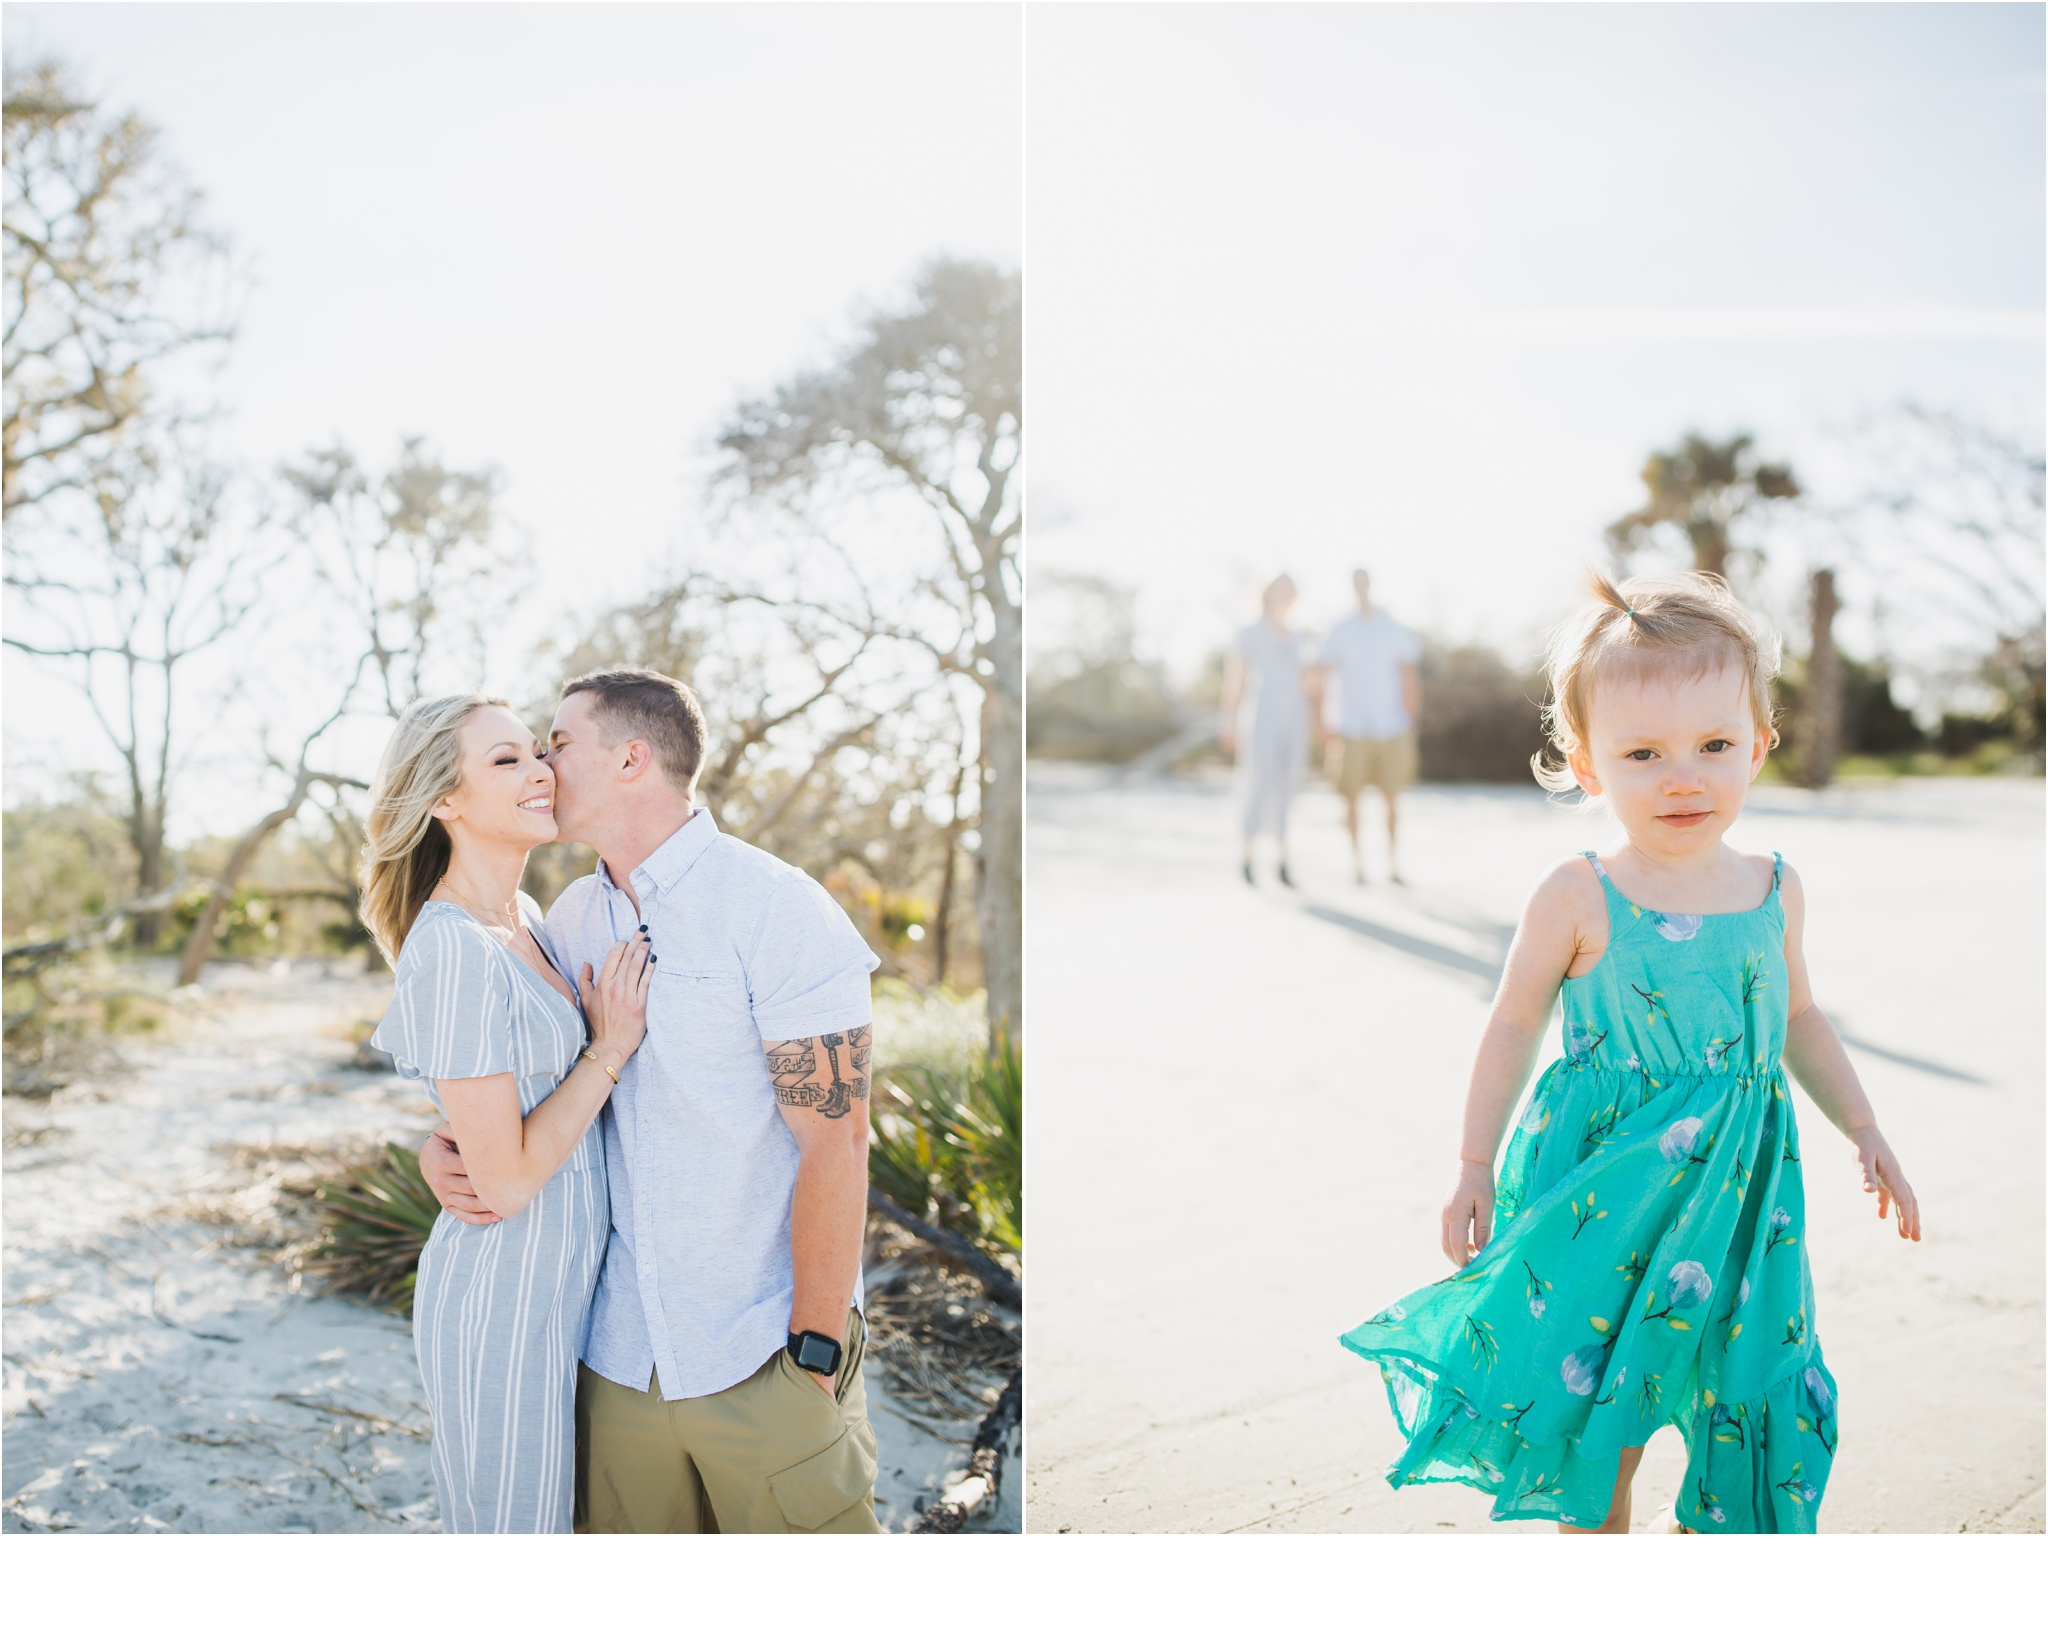 Rainey_Gregg_Photography_St._Simons_Island_Georgia_California_Wedding_Portrait_Photography_1770.jpg